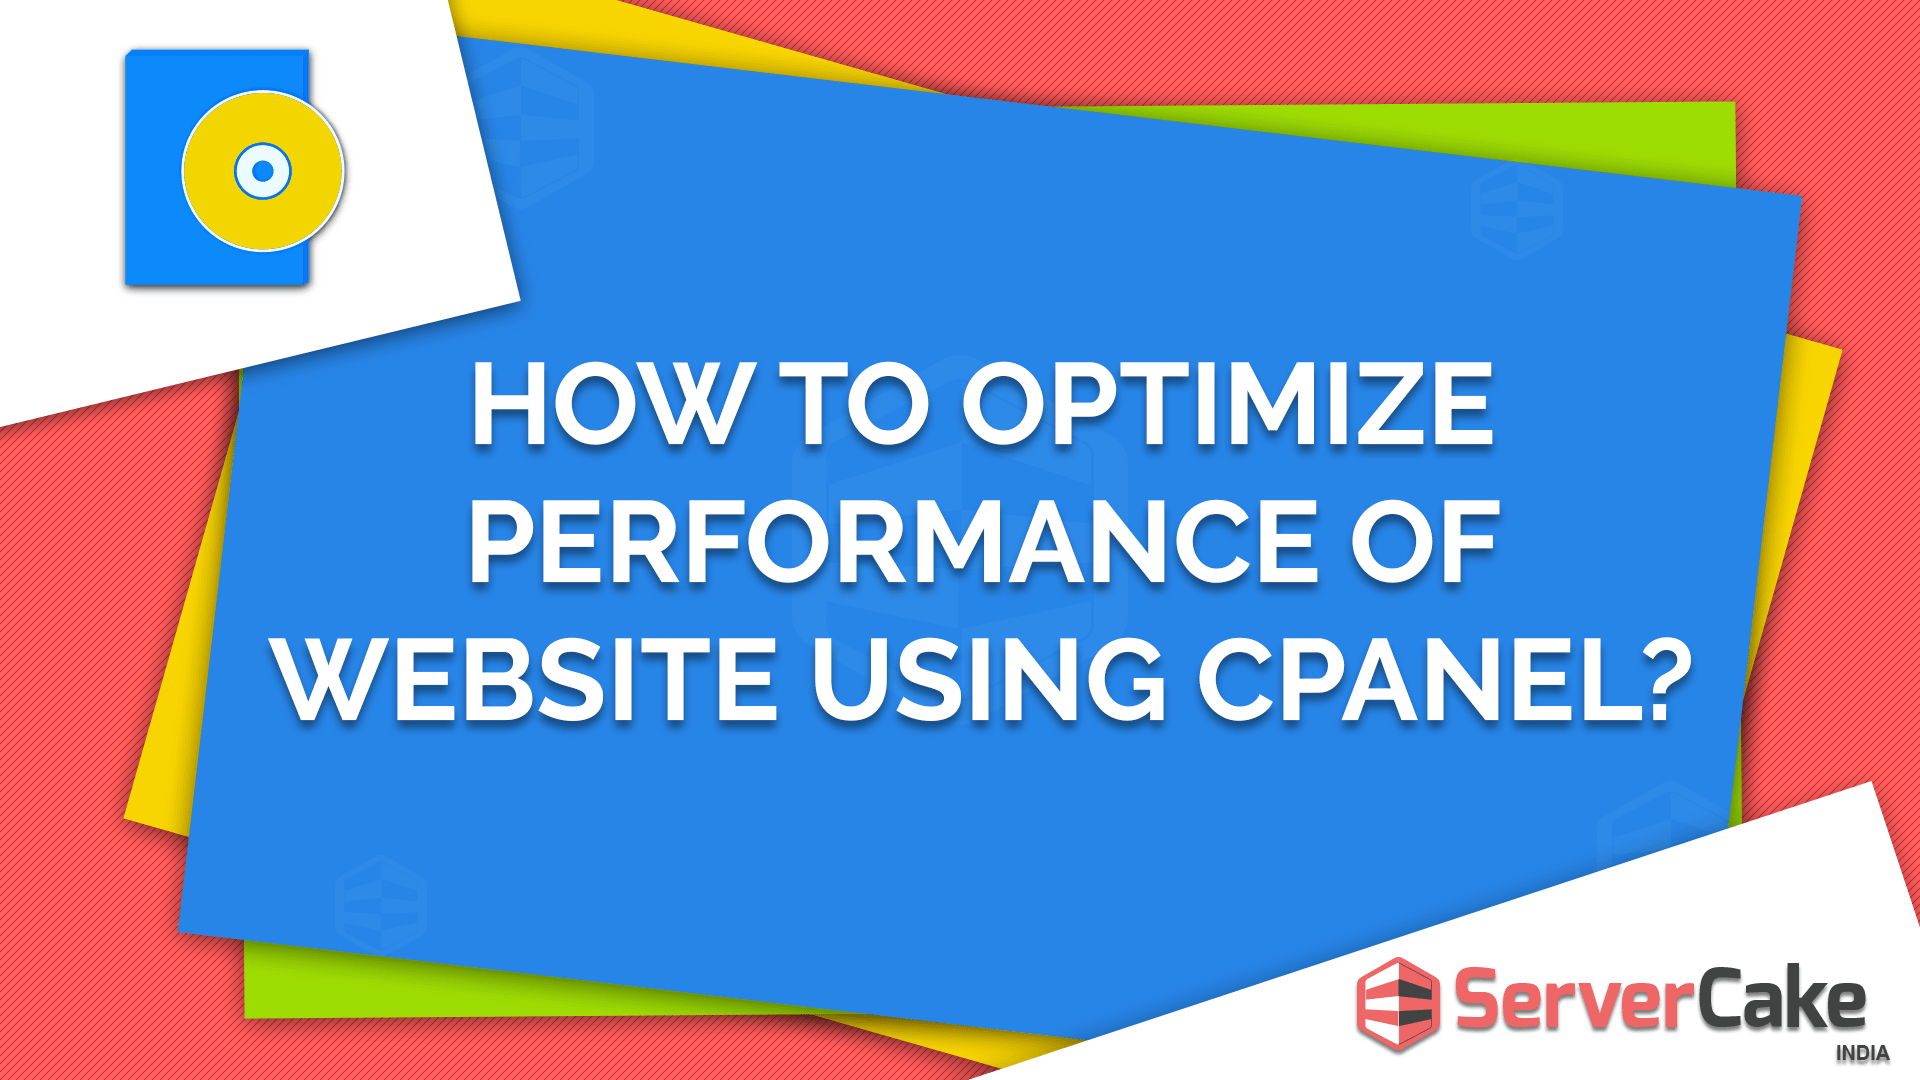 How to optimize performance of website using cPanel